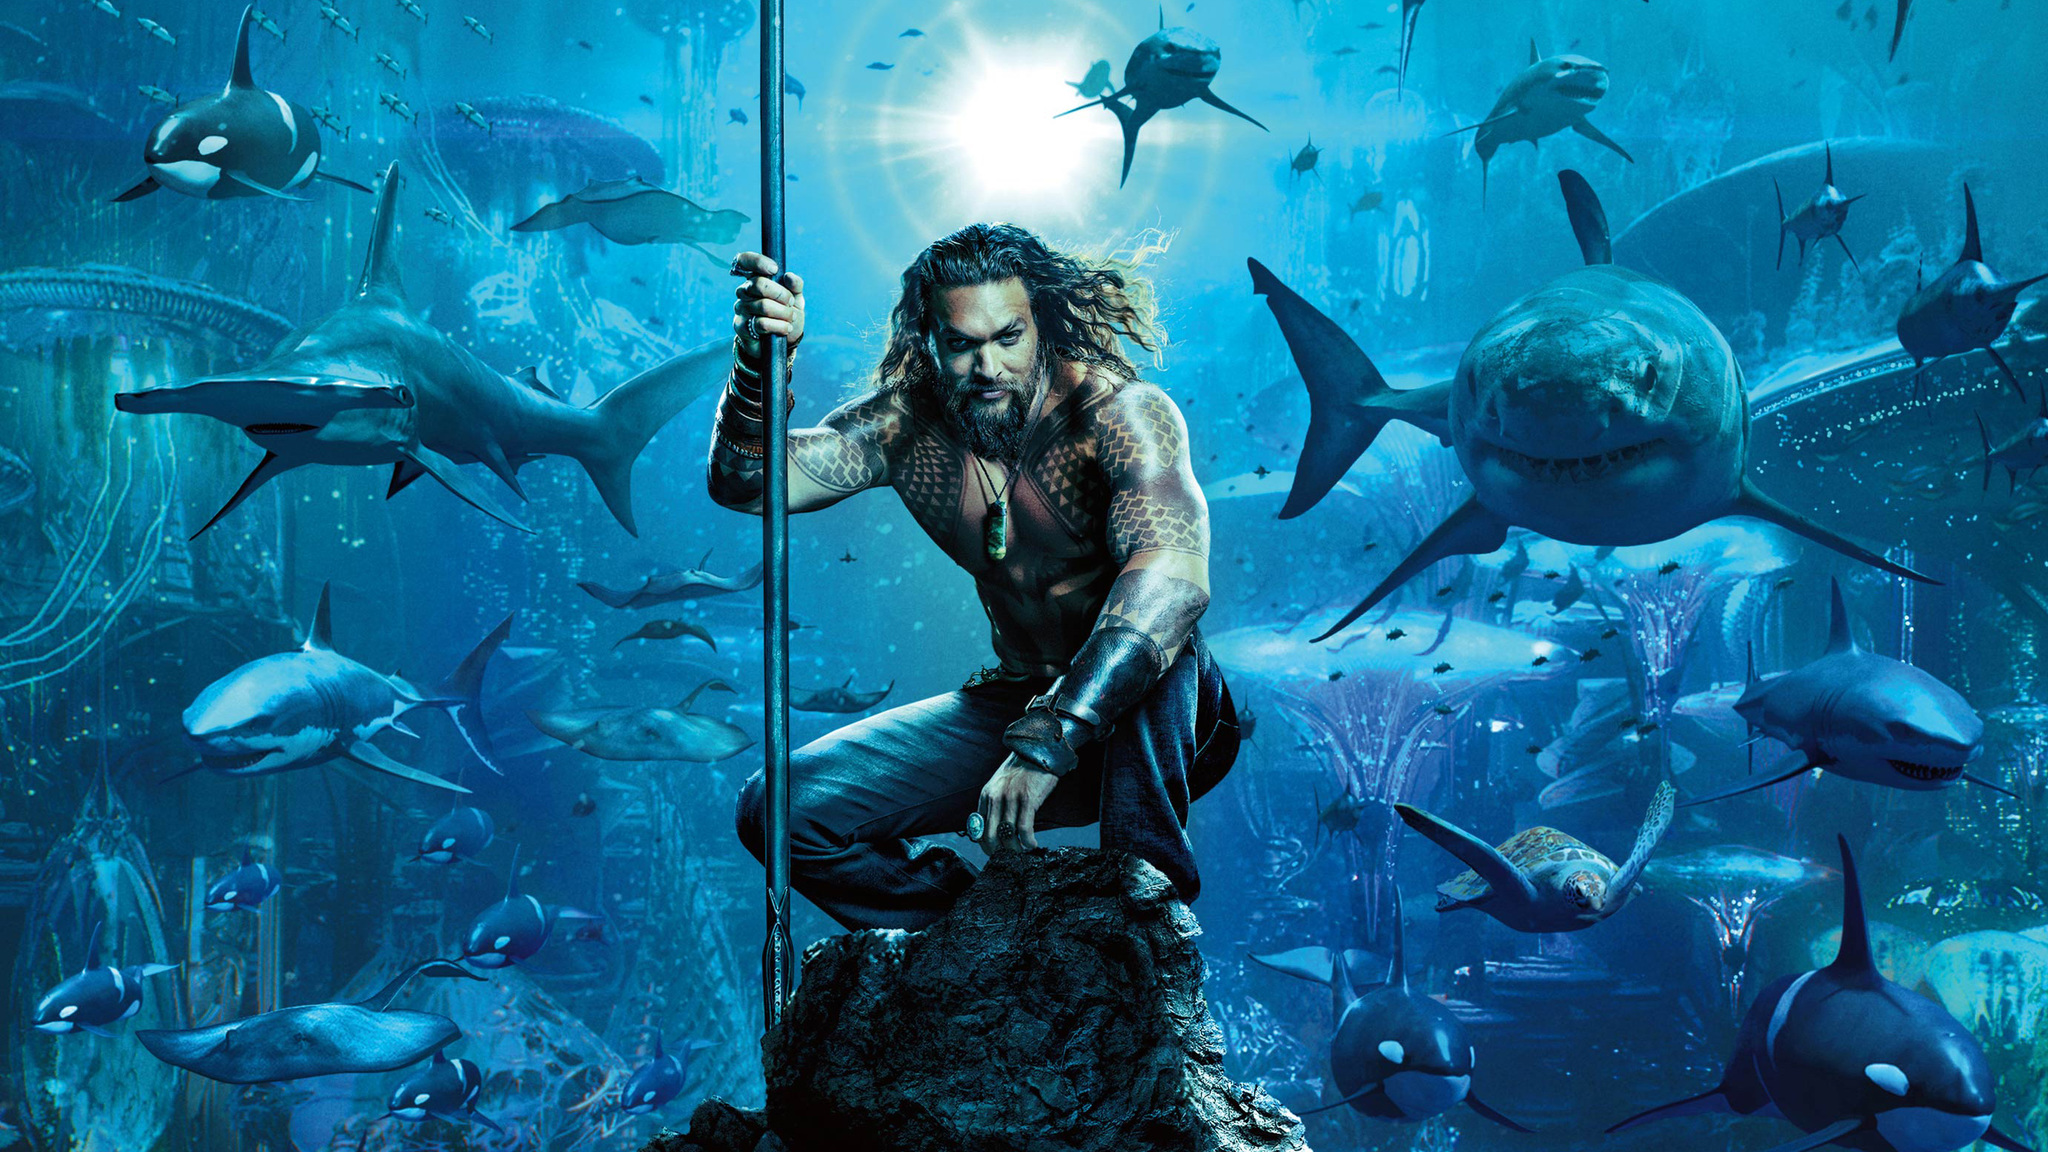 Aquaman is officially the highest grossing DC Extended Universe movie ever